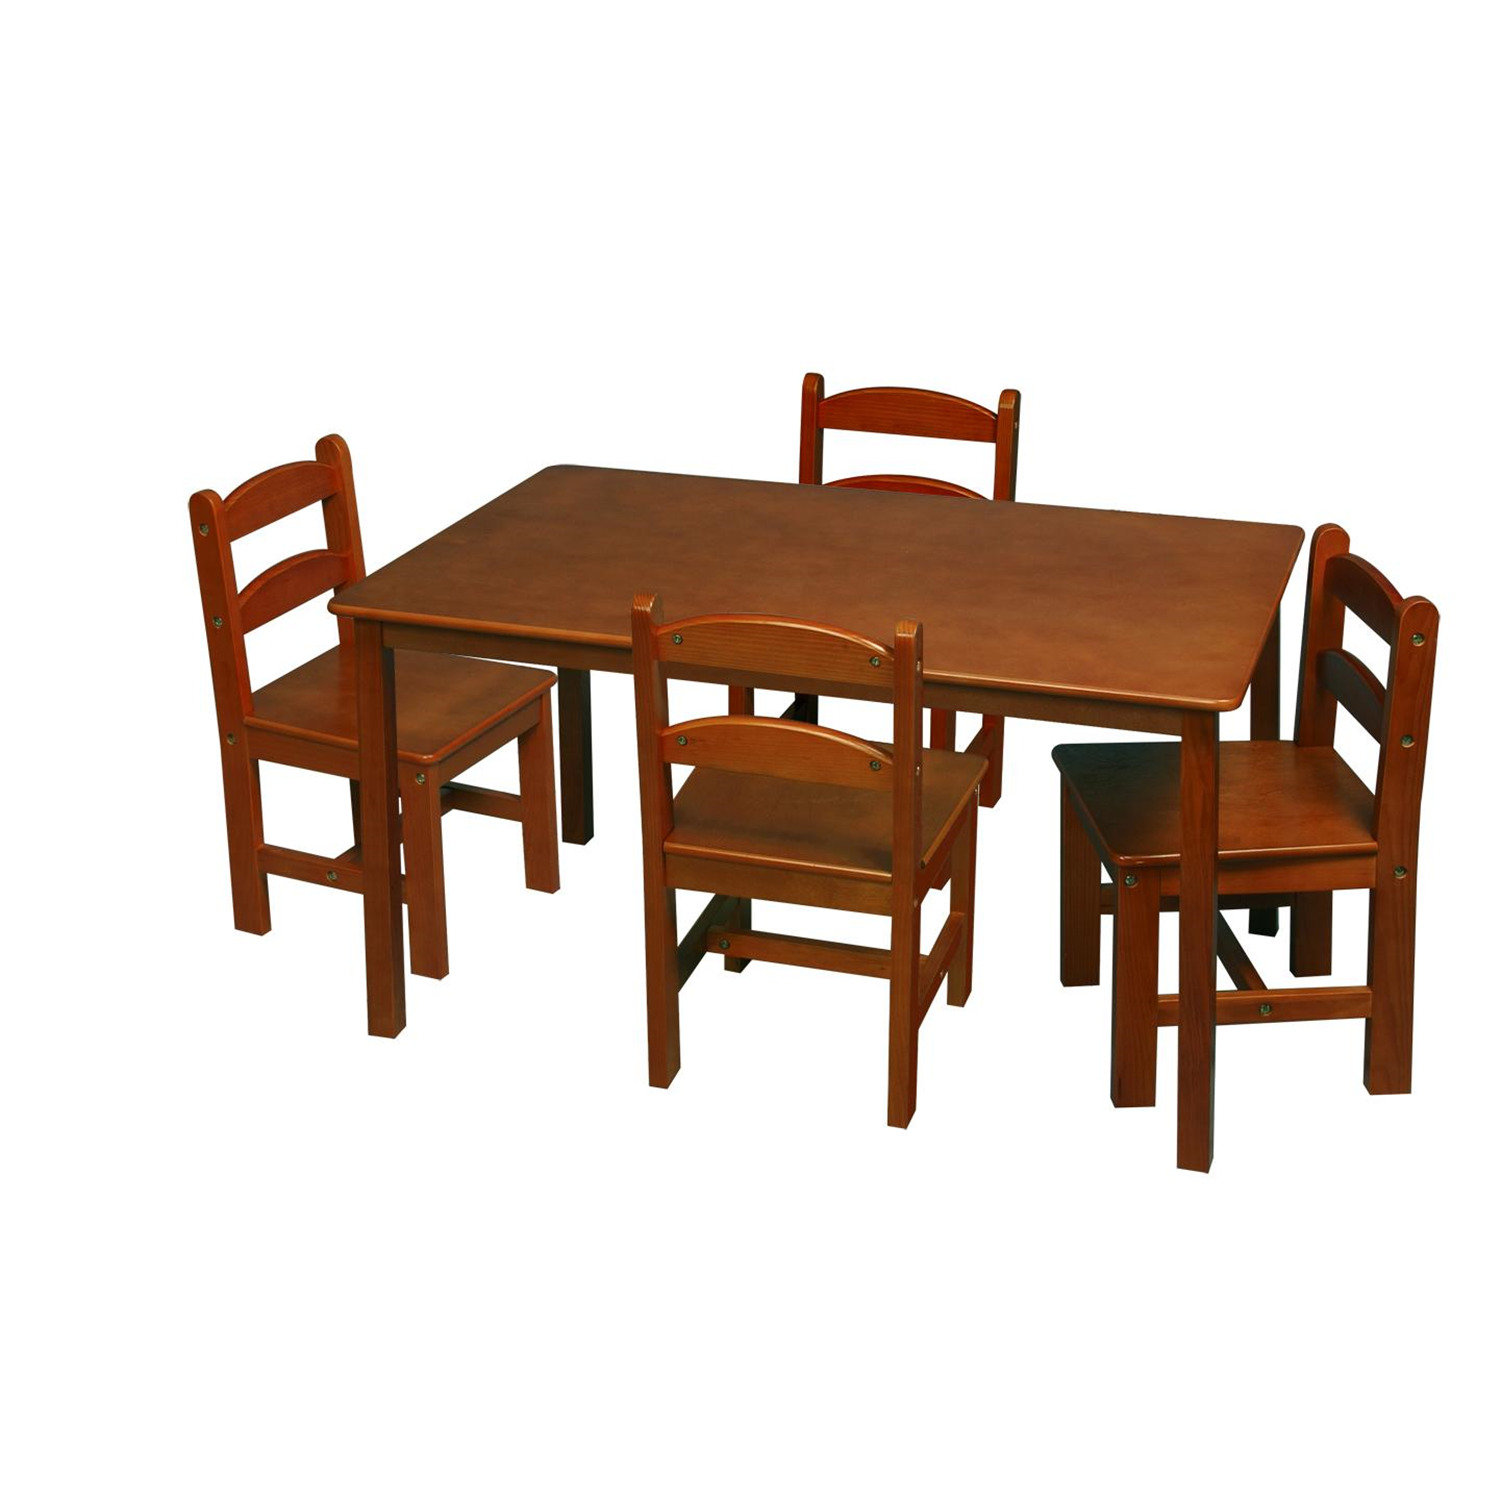 Giftmark gift mark table with 4 chairs by oj commerce for Markup table